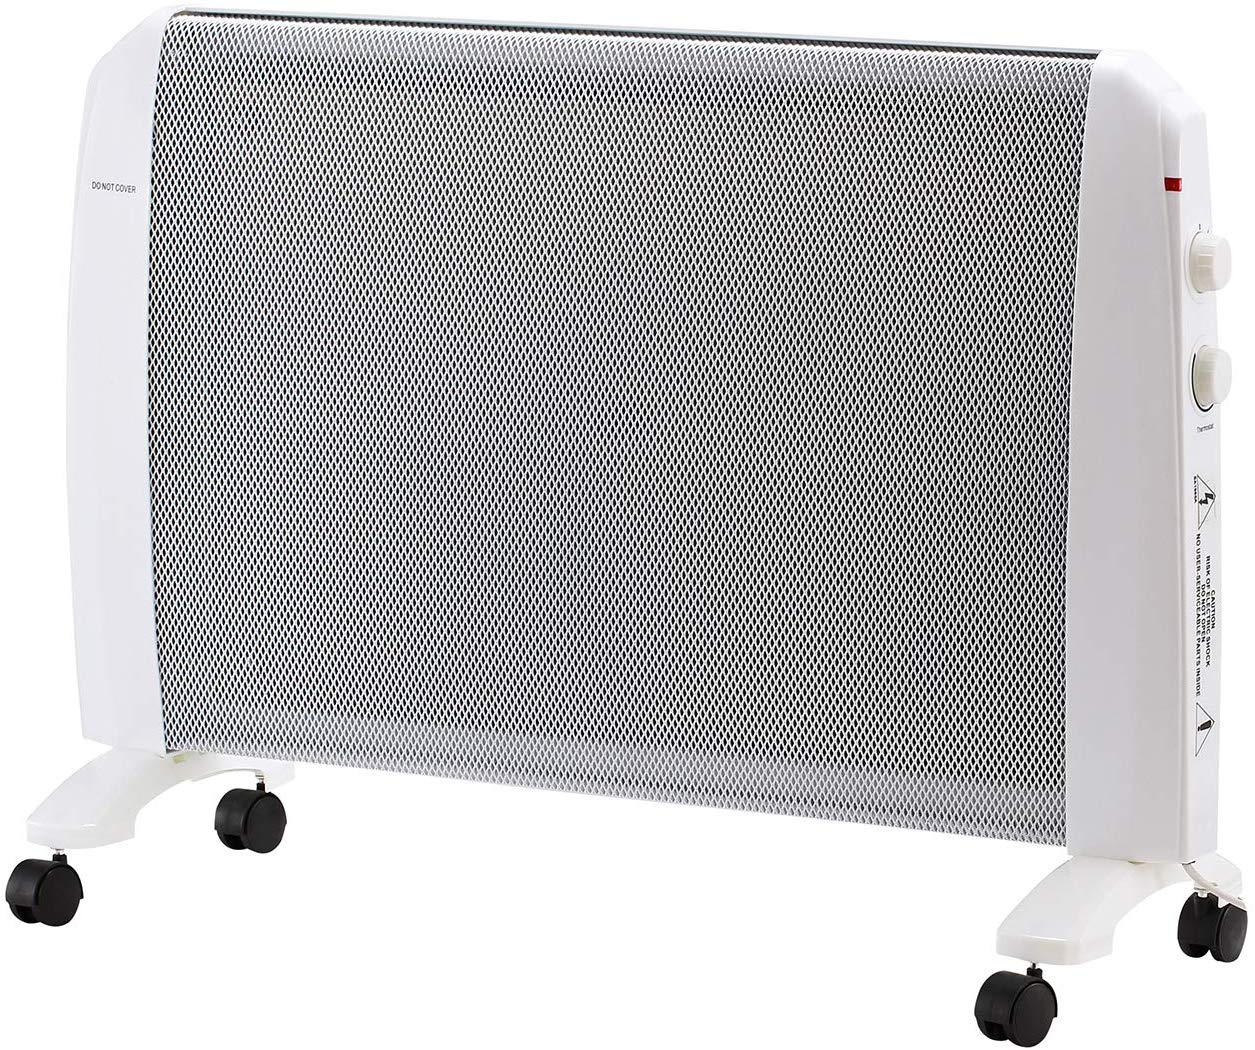 a convector space heater